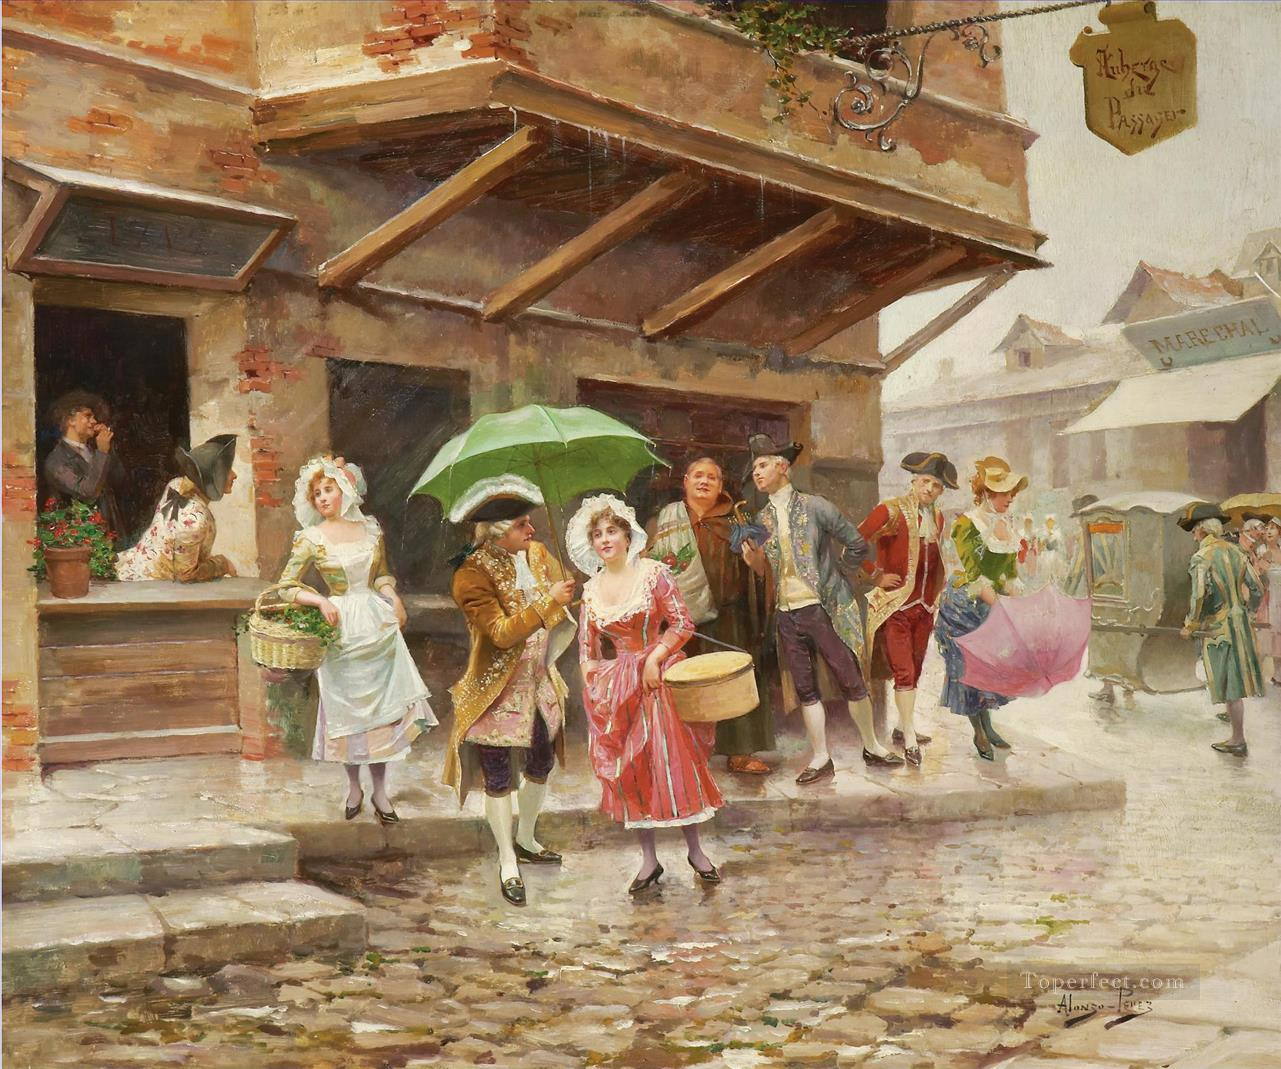 PASEO MATINAL A MORNING WALK Spain Bourbon Dynasty Mariano Alonso Perez Oil Paintings